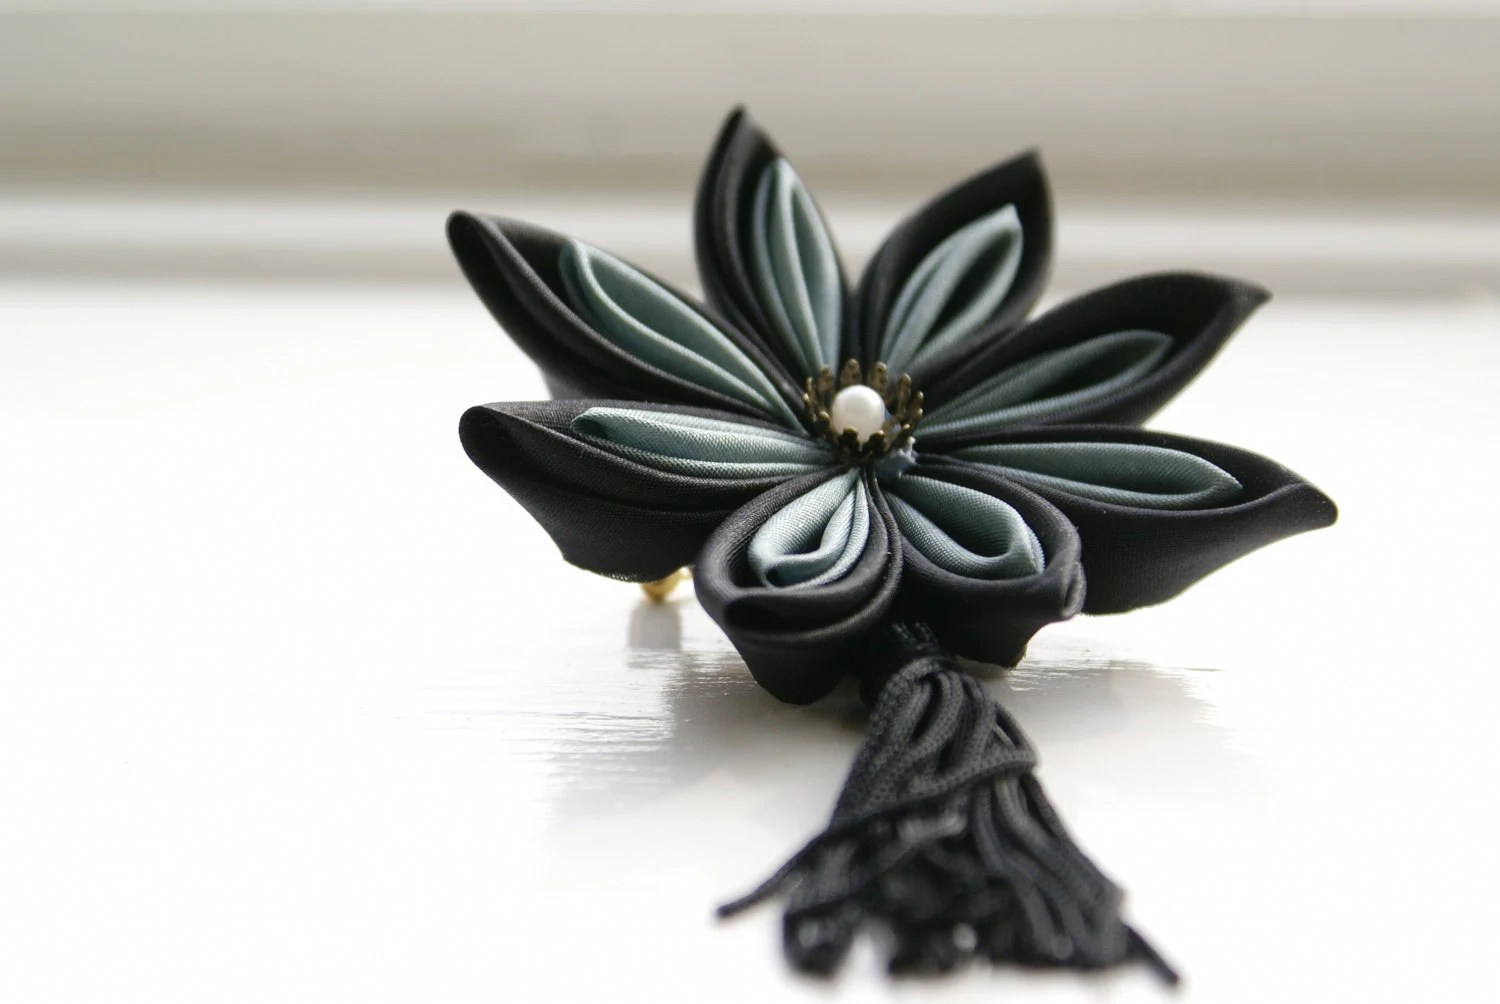 Black Flower Brooch Pin: Black and Gray Silk Kanzashi Flower Corsage / Pin with Tassel